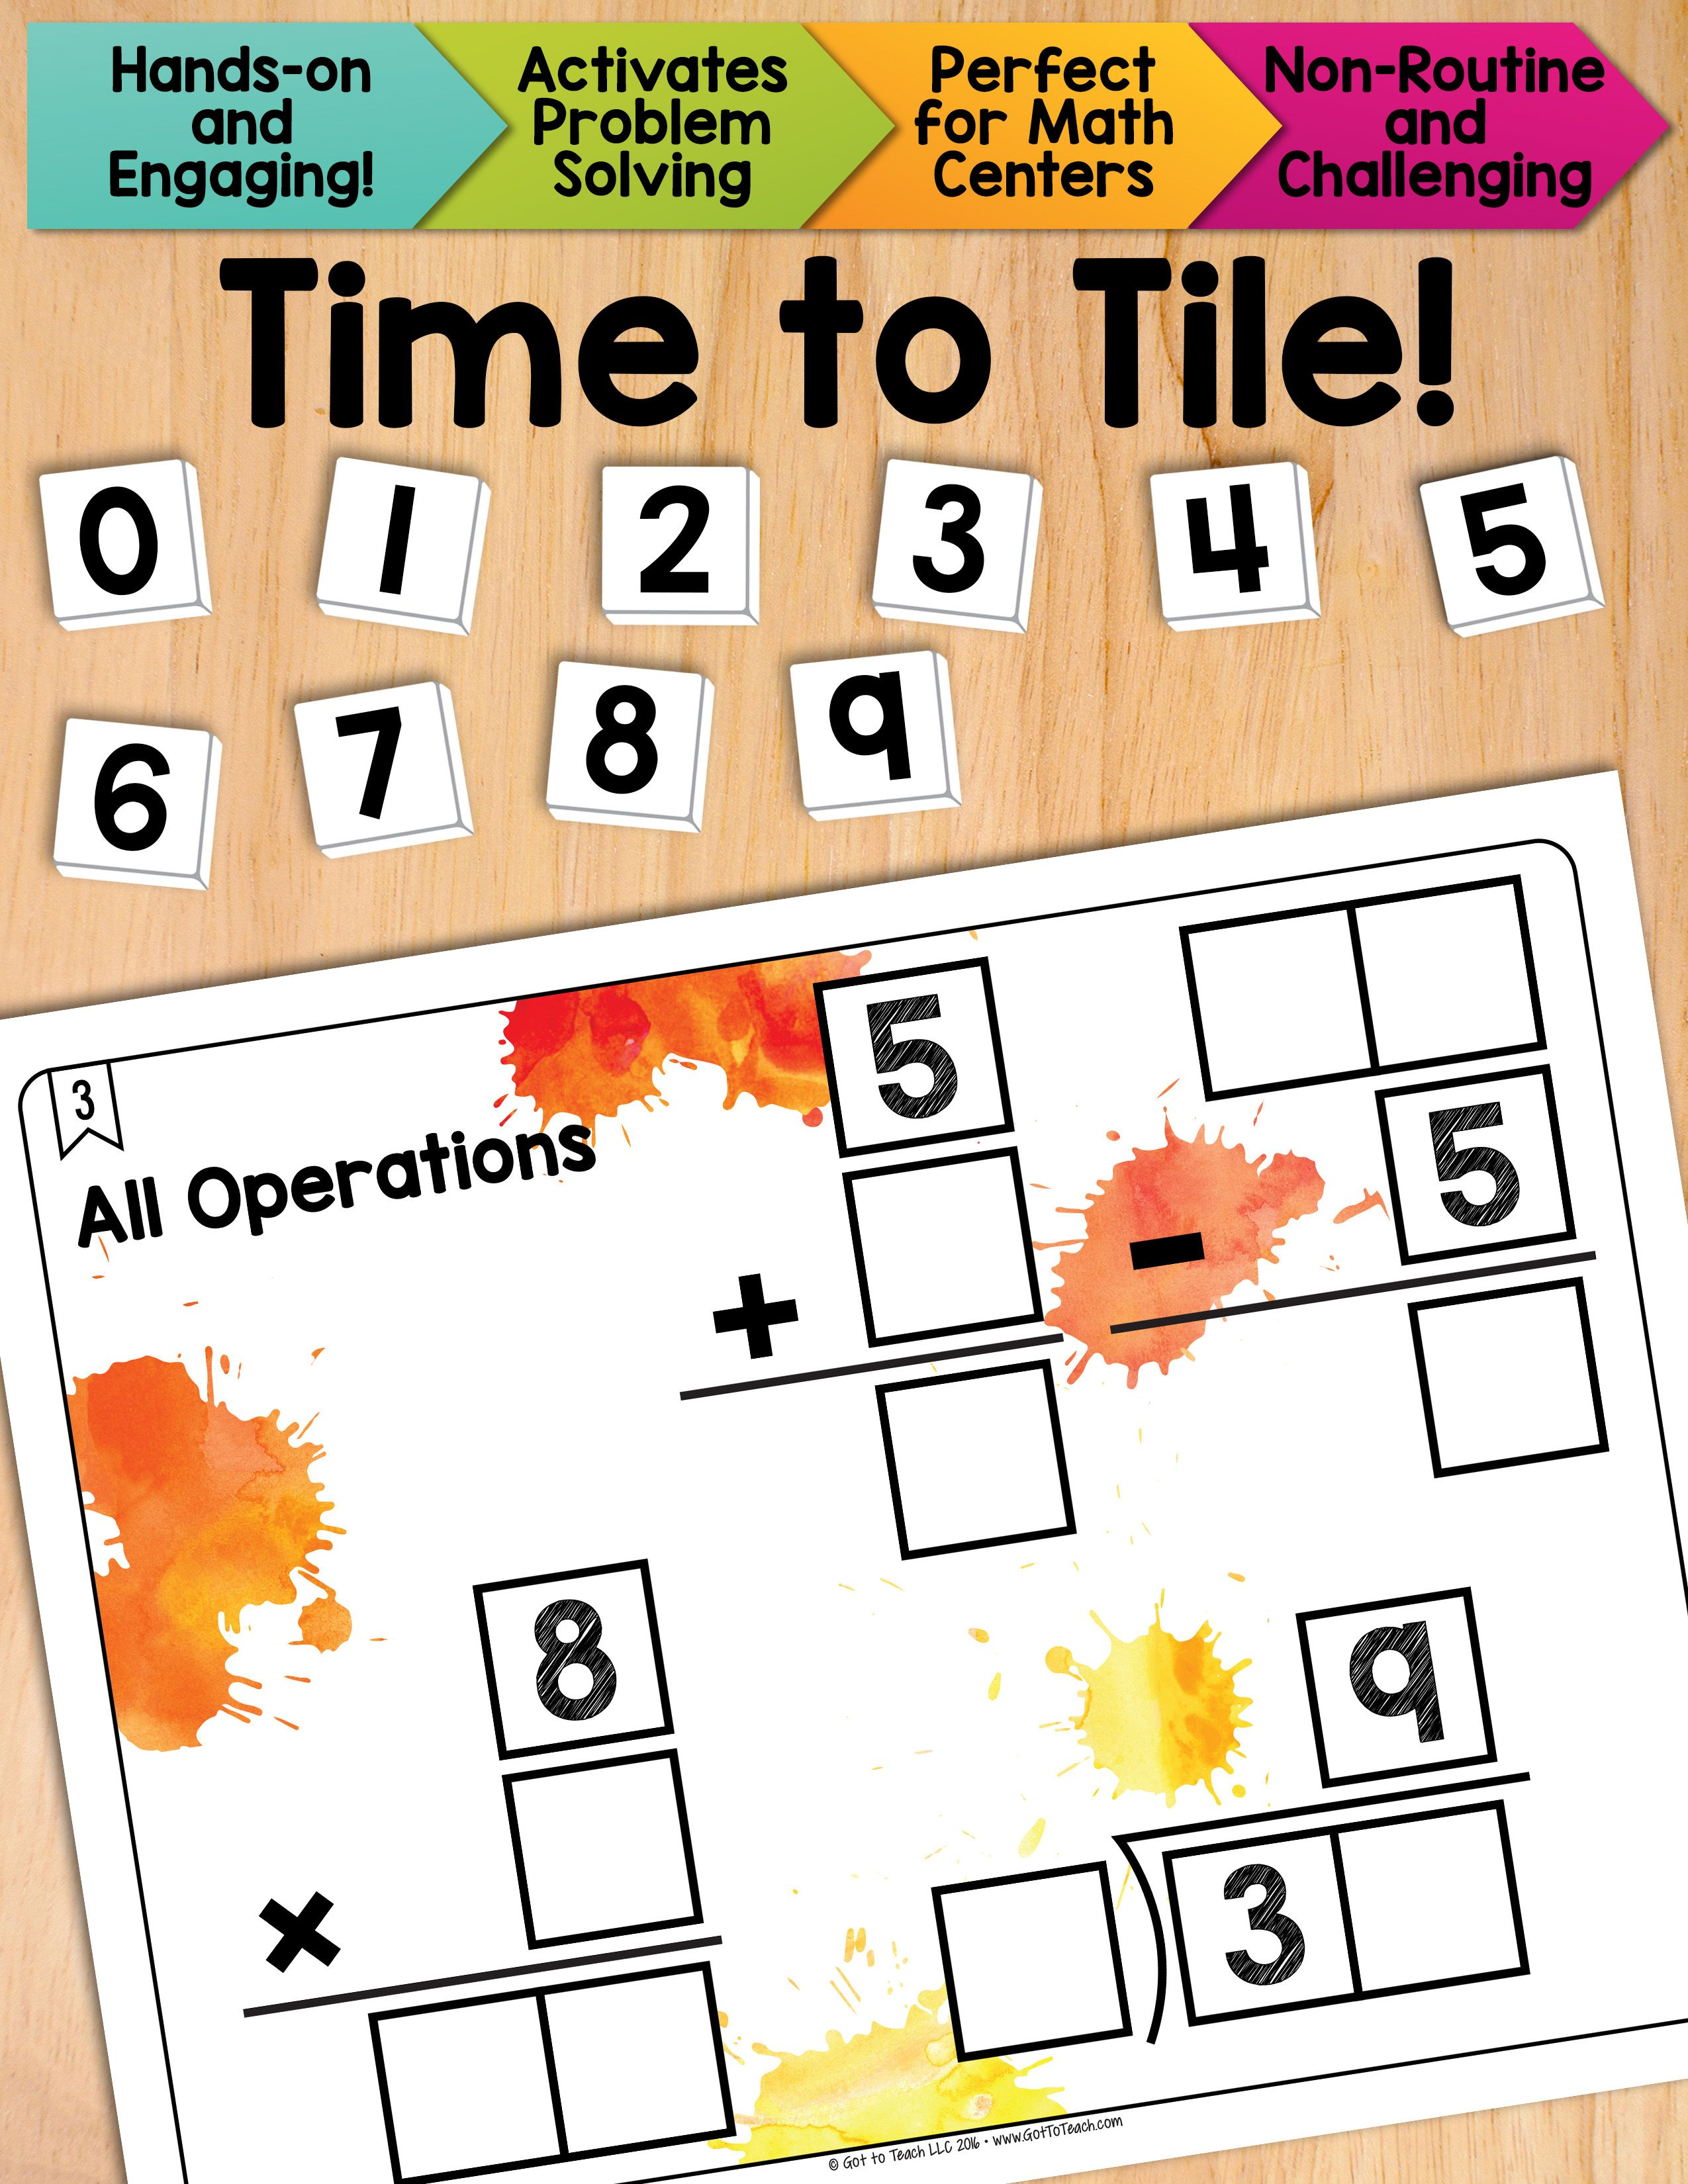 Worksheet Rote Math math tiles all operations add subtract multiply divide and get your students thinking beyond